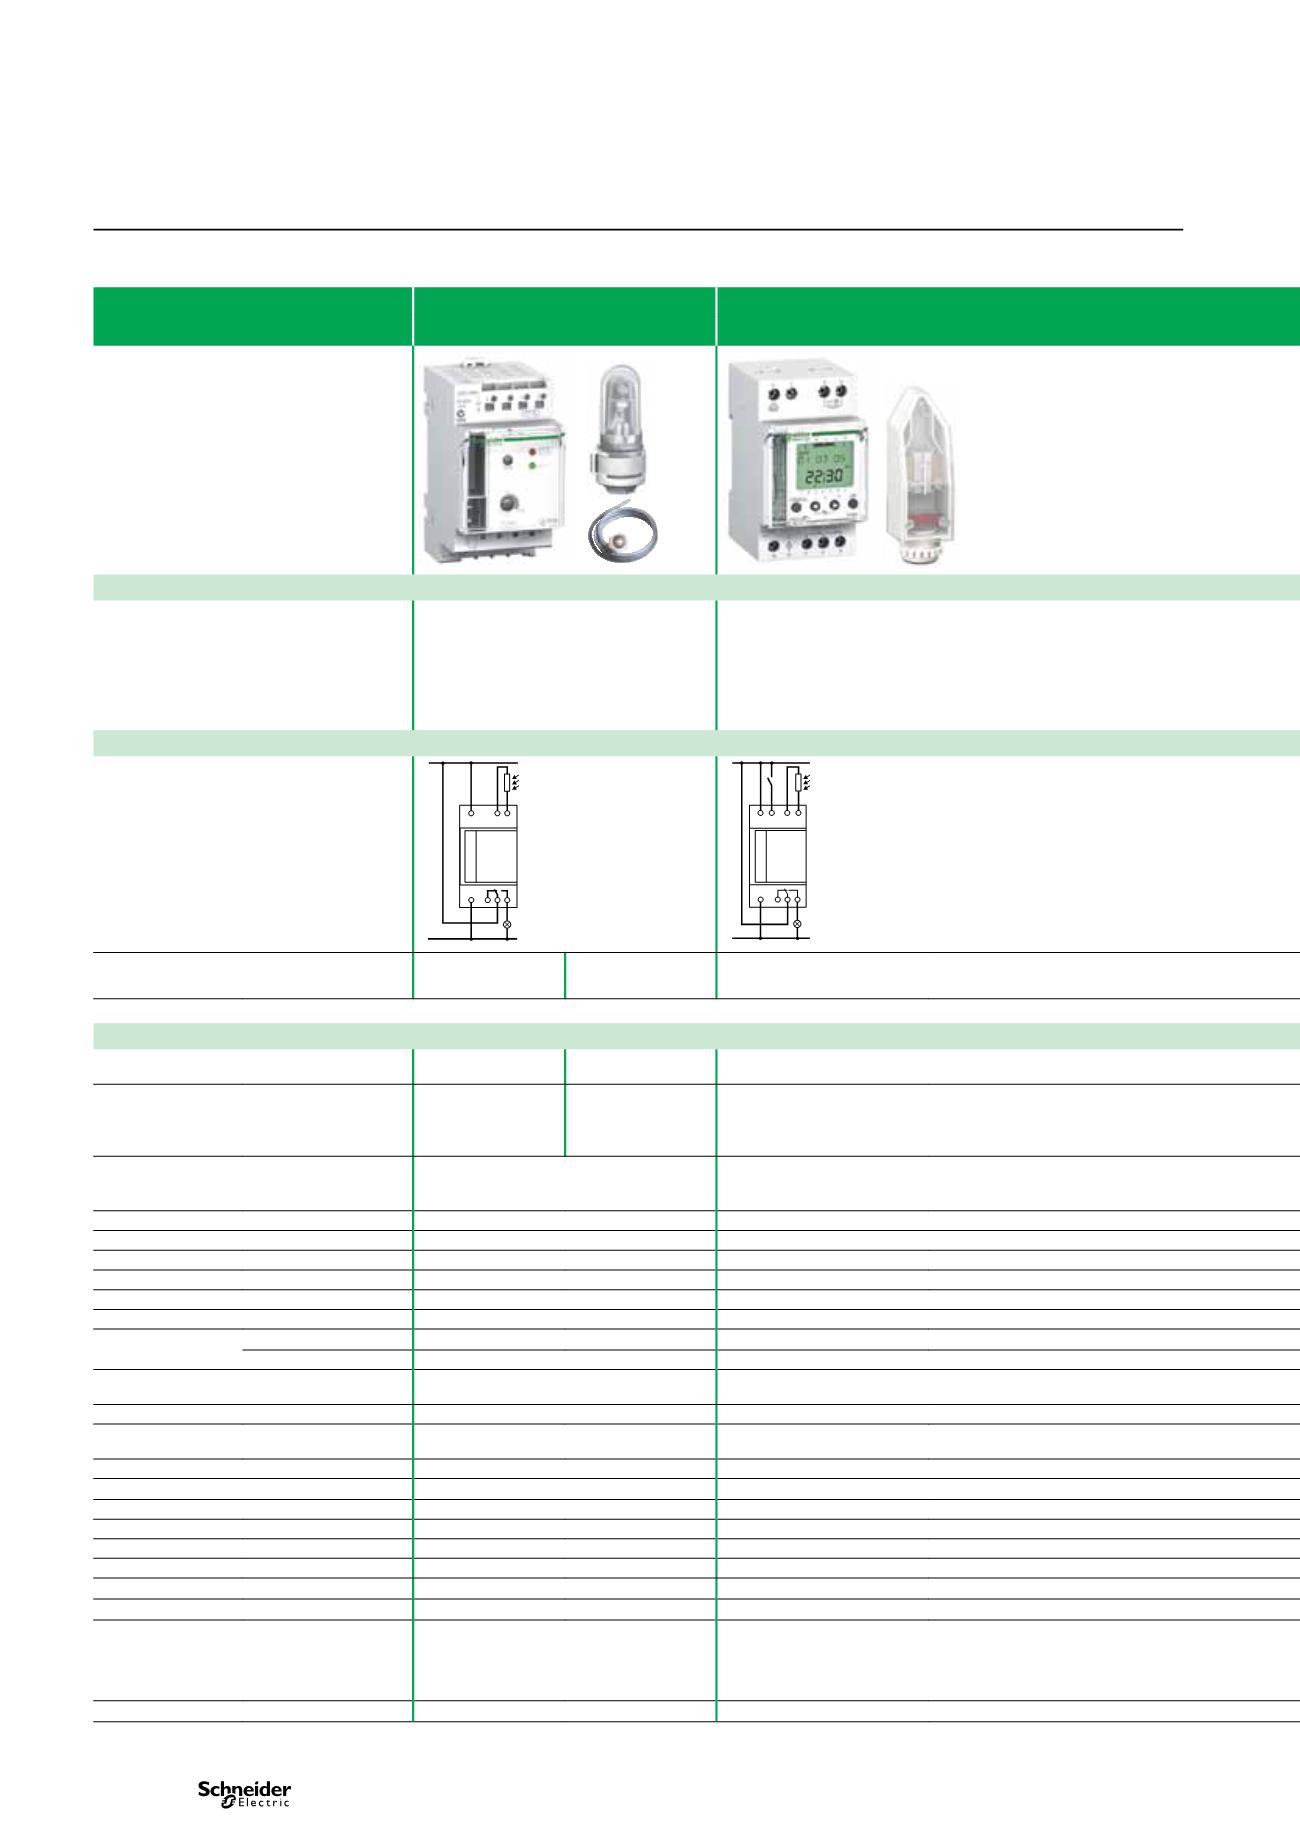 siemens hand off auto switch wiring diagram telephone plug schneider lighting control get free image